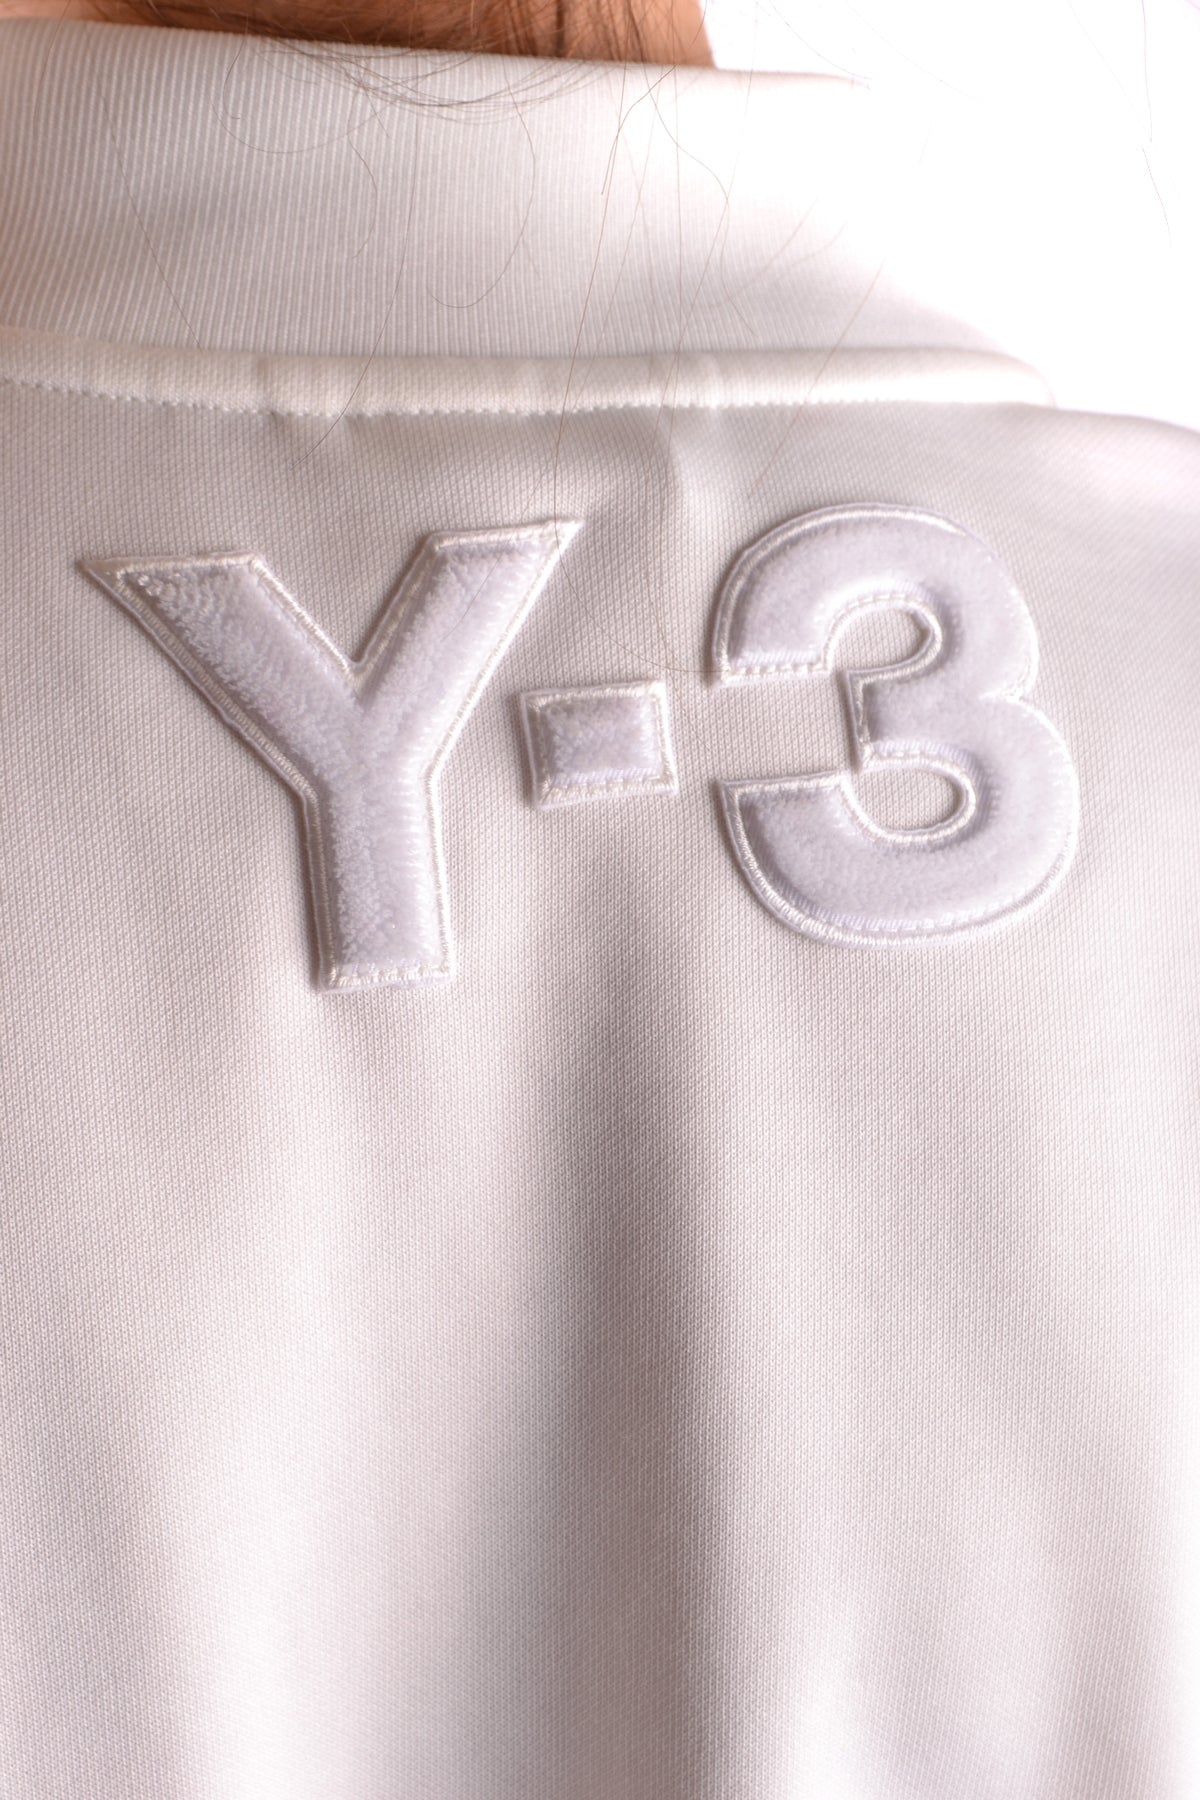 Sweatshirt Adidas Y-3 Yohji Yamamoto-Sweatshirts - WOMAN-Product Details Terms: New With LabelYear: 2017Main Color: WhiteGender: WomanMade In: ChinaSize: IntSeason: Spring / SummerClothing Type: SweatshirtsComposition: Cotton 45%, Polyester 55%-Keyomi-Sook